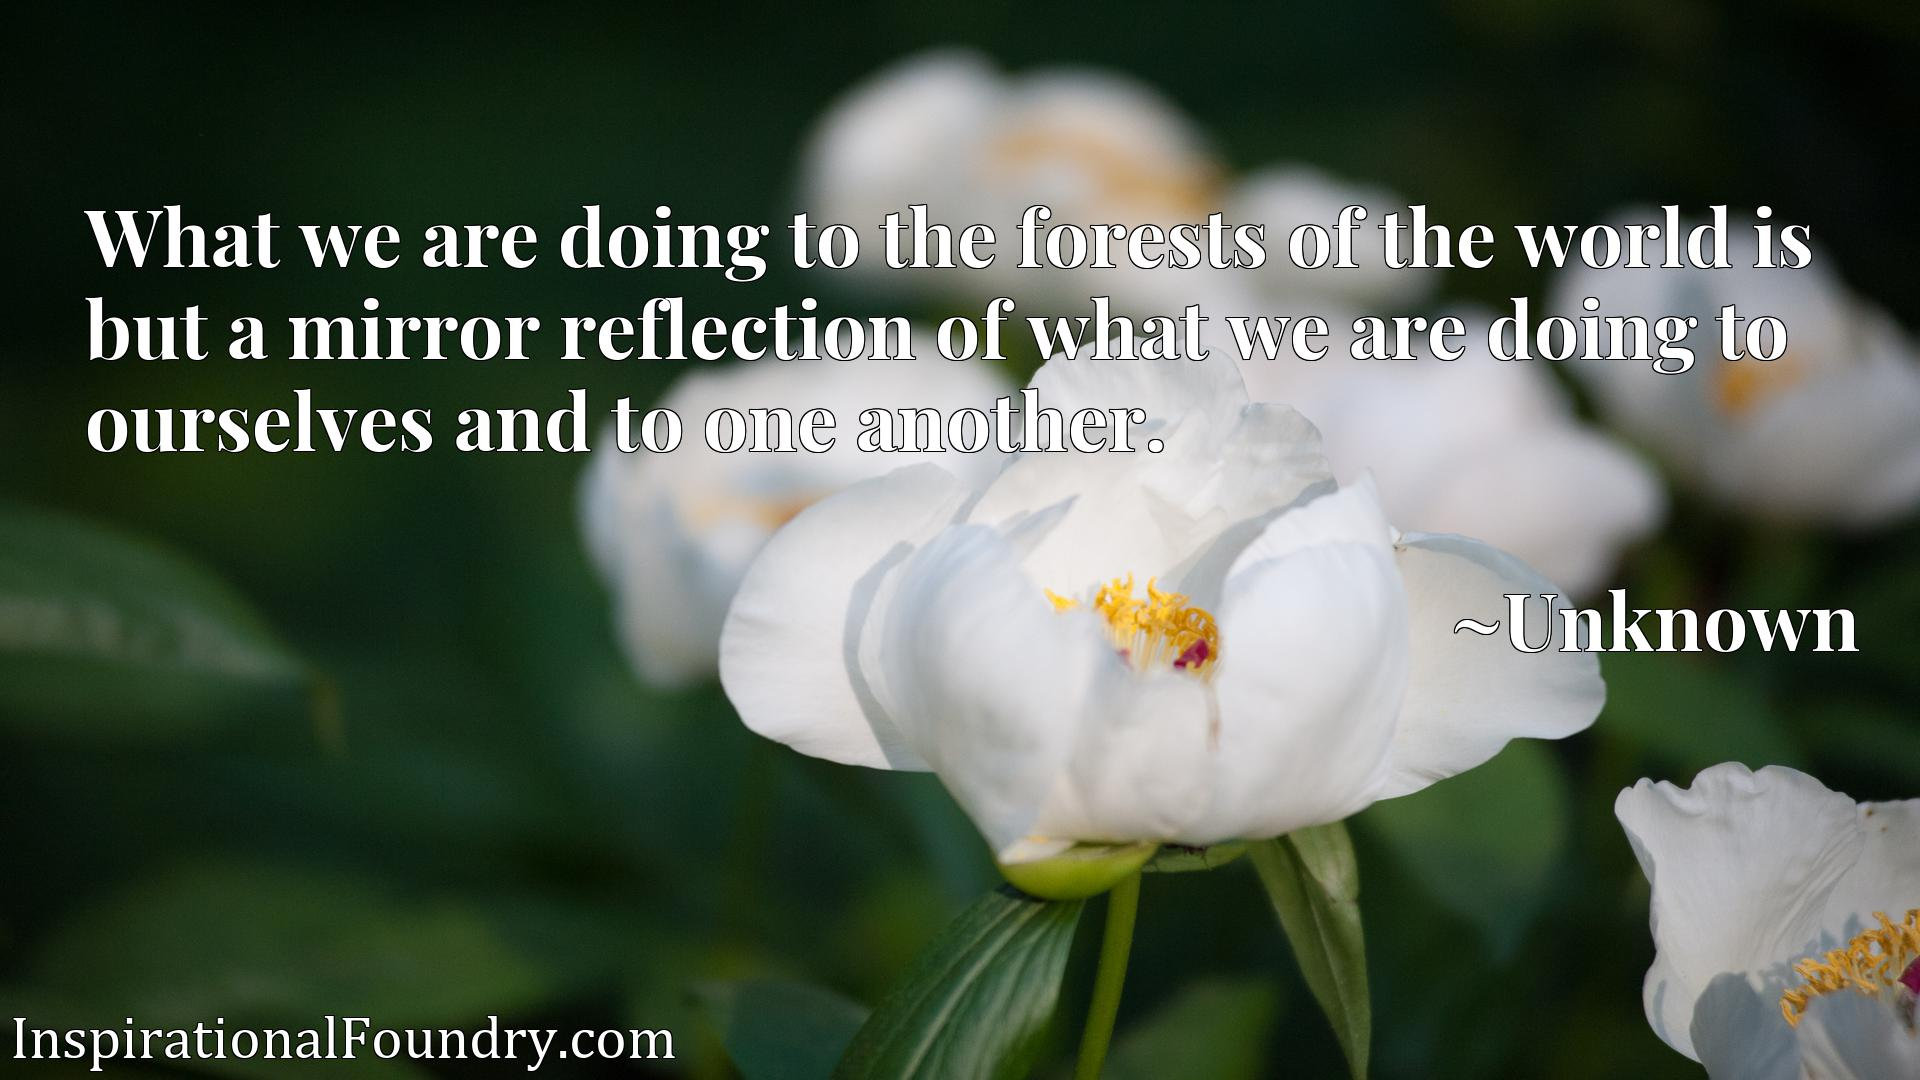 What we are doing to the forests of the world is but a mirror reflection of what we are doing to ourselves and to one another.